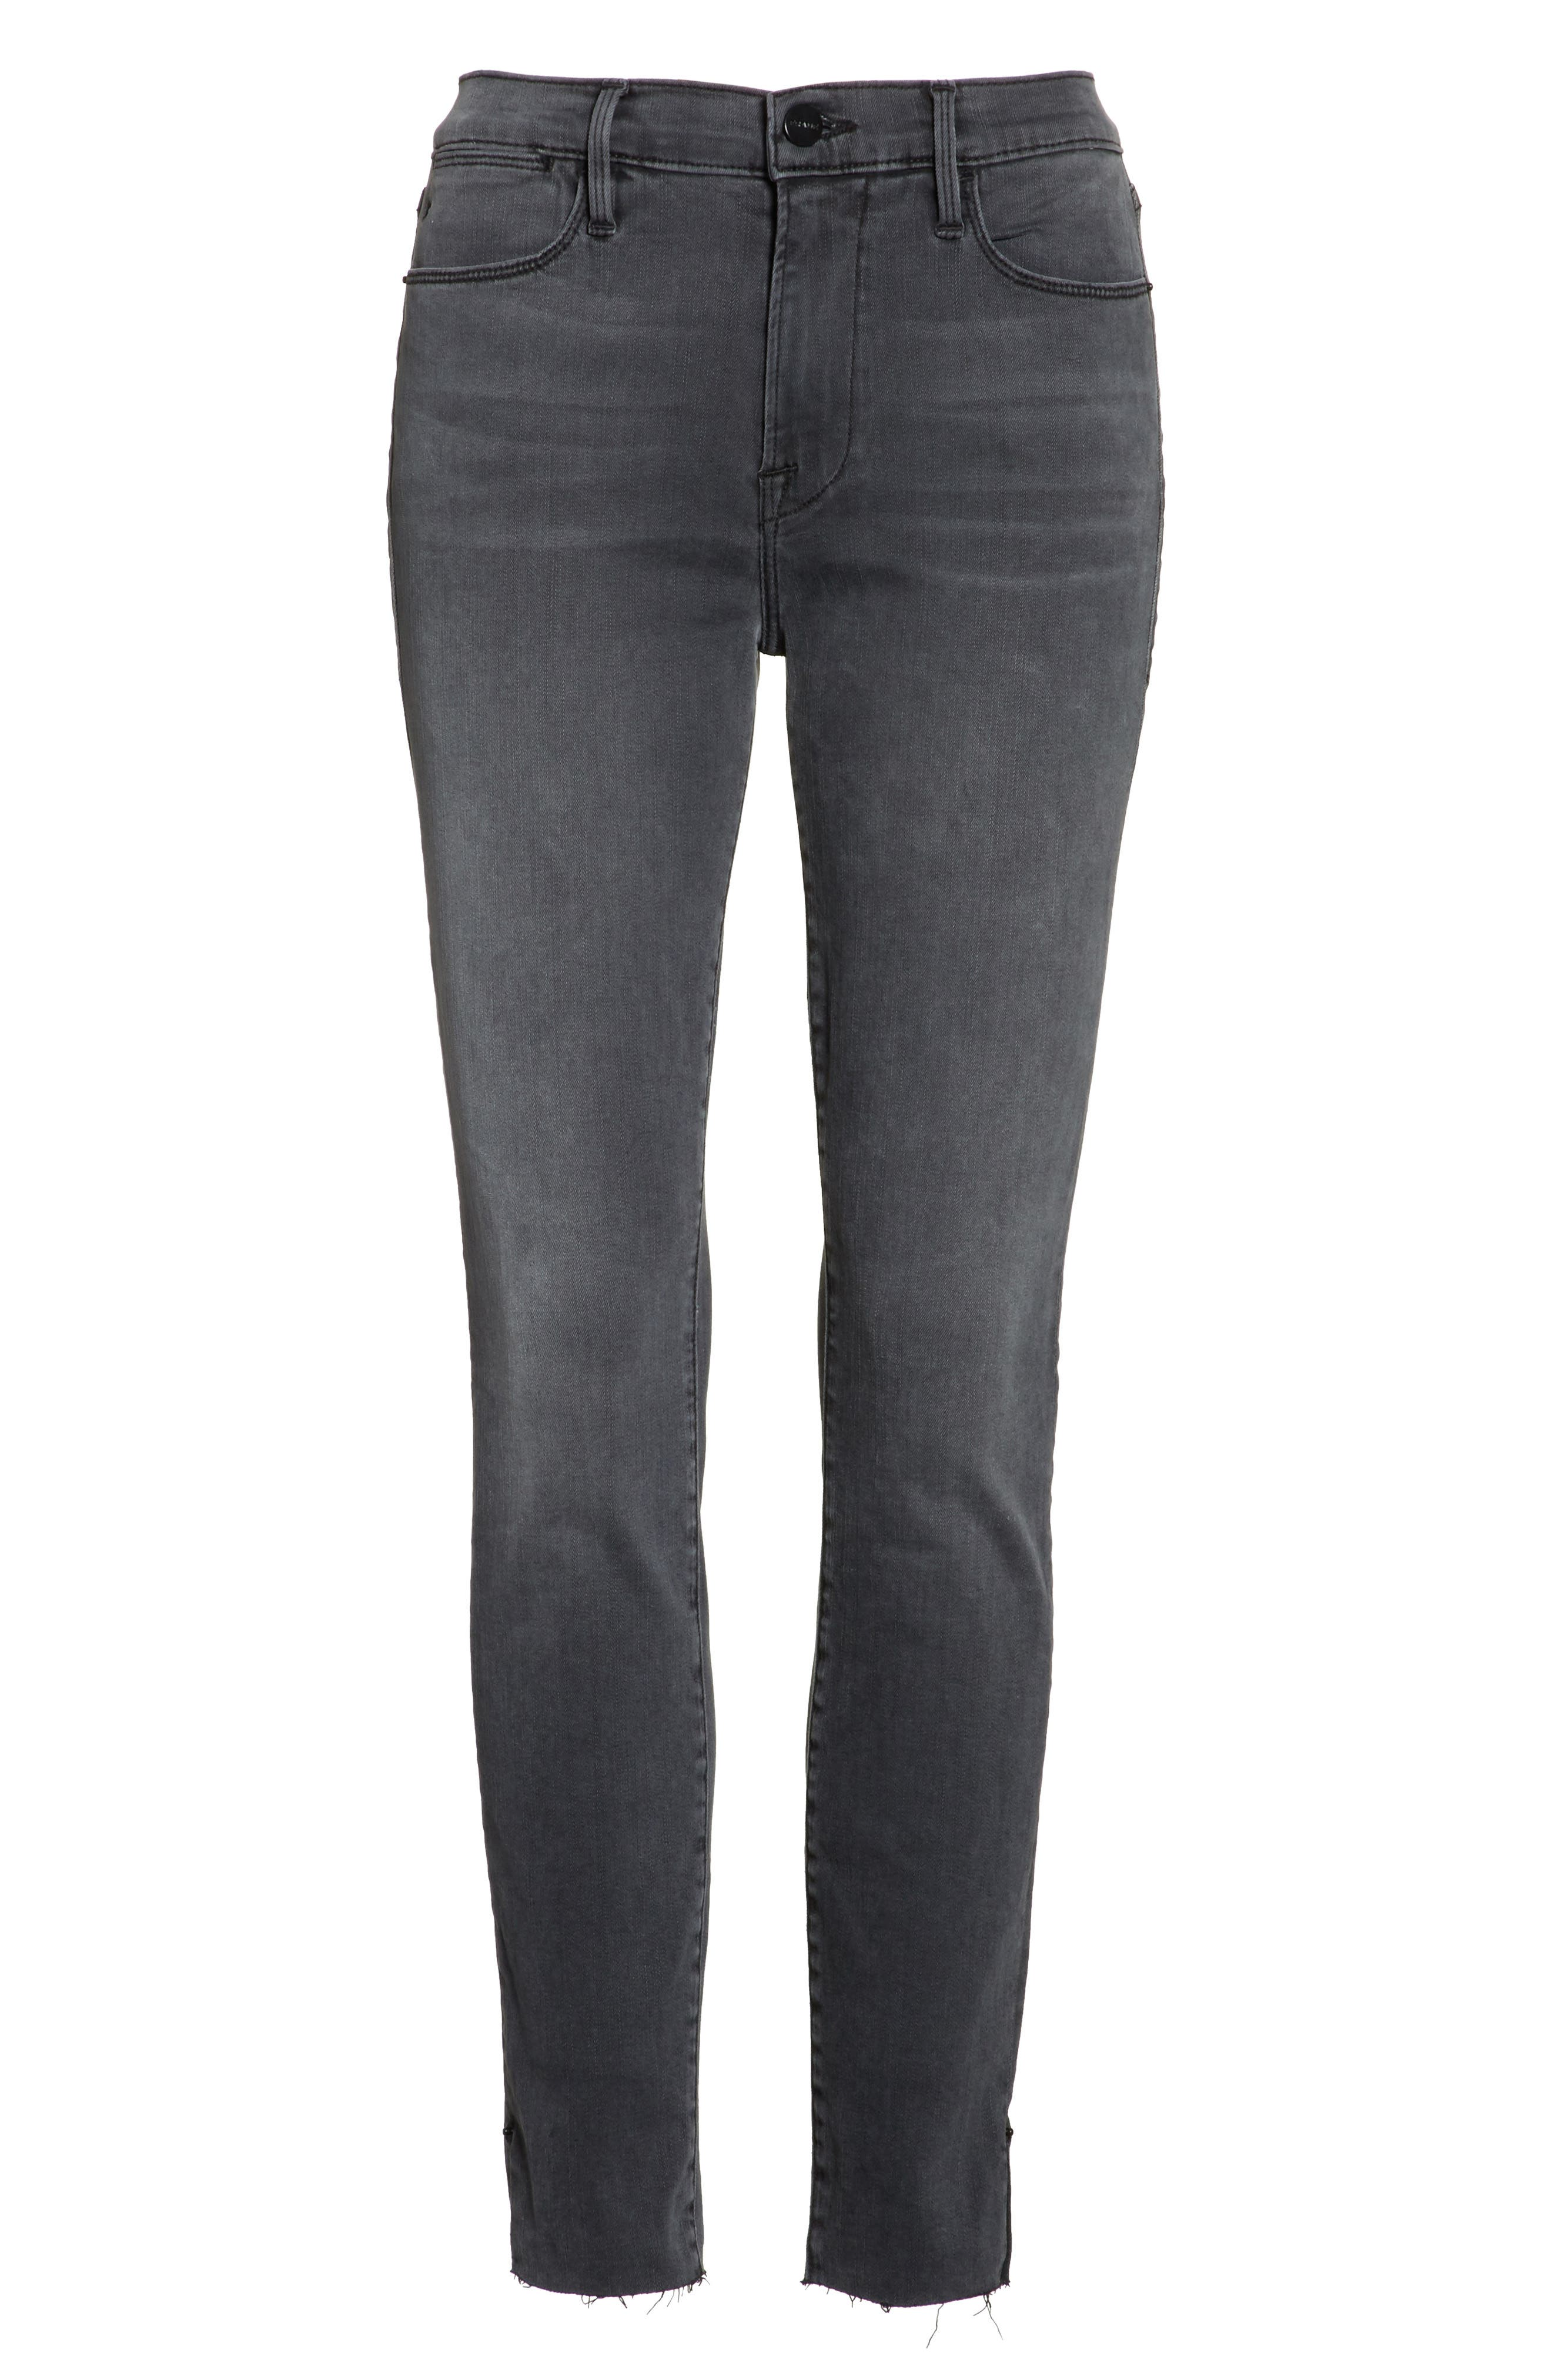 Le High Ankle Skinny Jeans,                             Alternate thumbnail 6, color,                             030